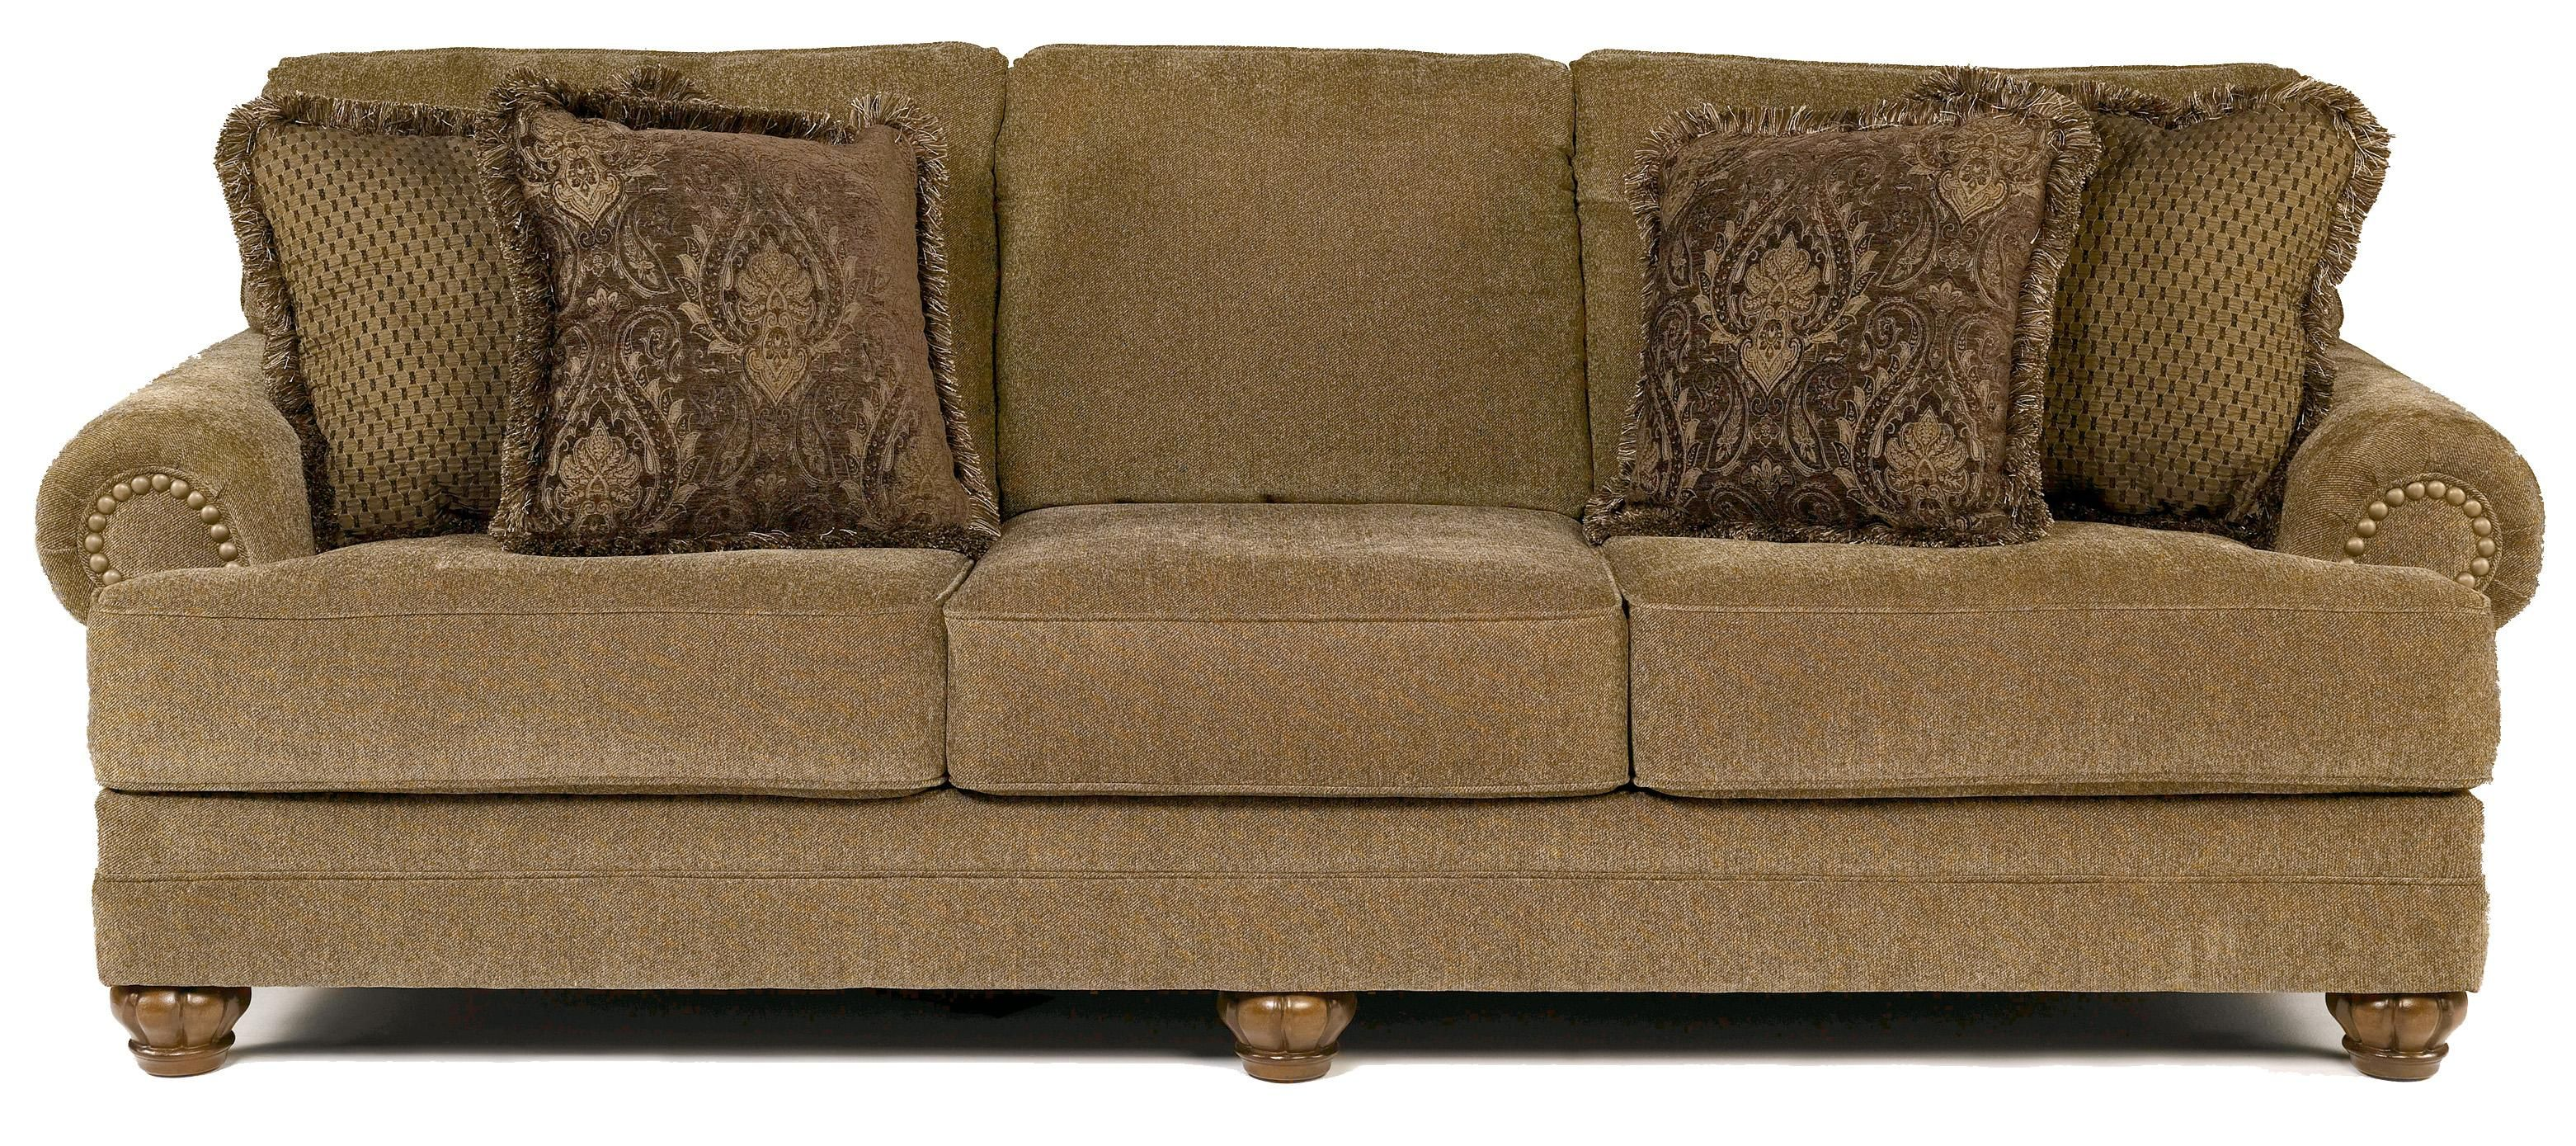 Stafford Antique Traditional Stationary Sofa By Signature Design